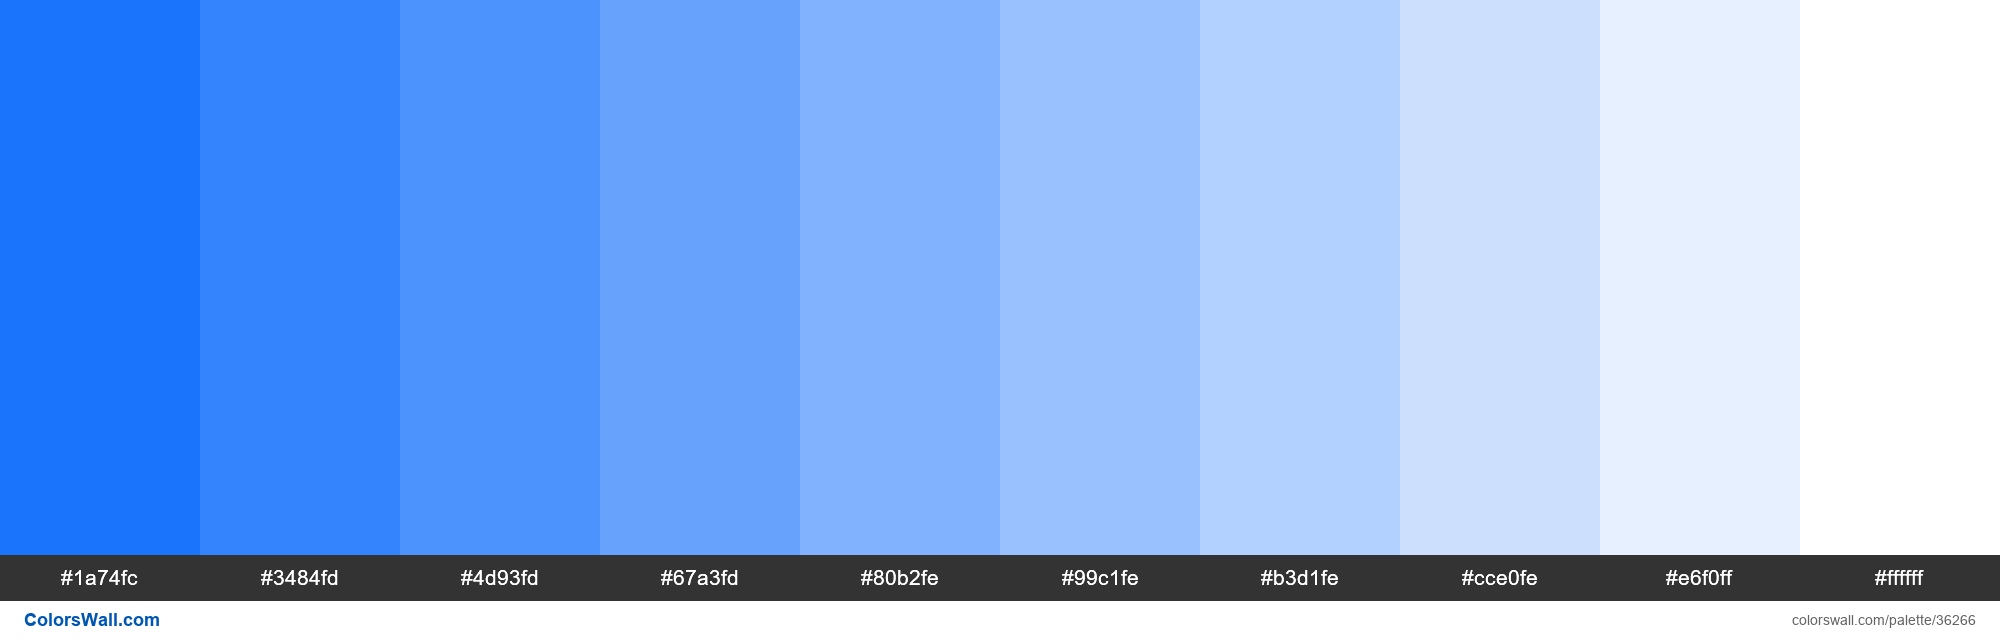 Tints XKCD Color bright blue #0165fc hex - #36266